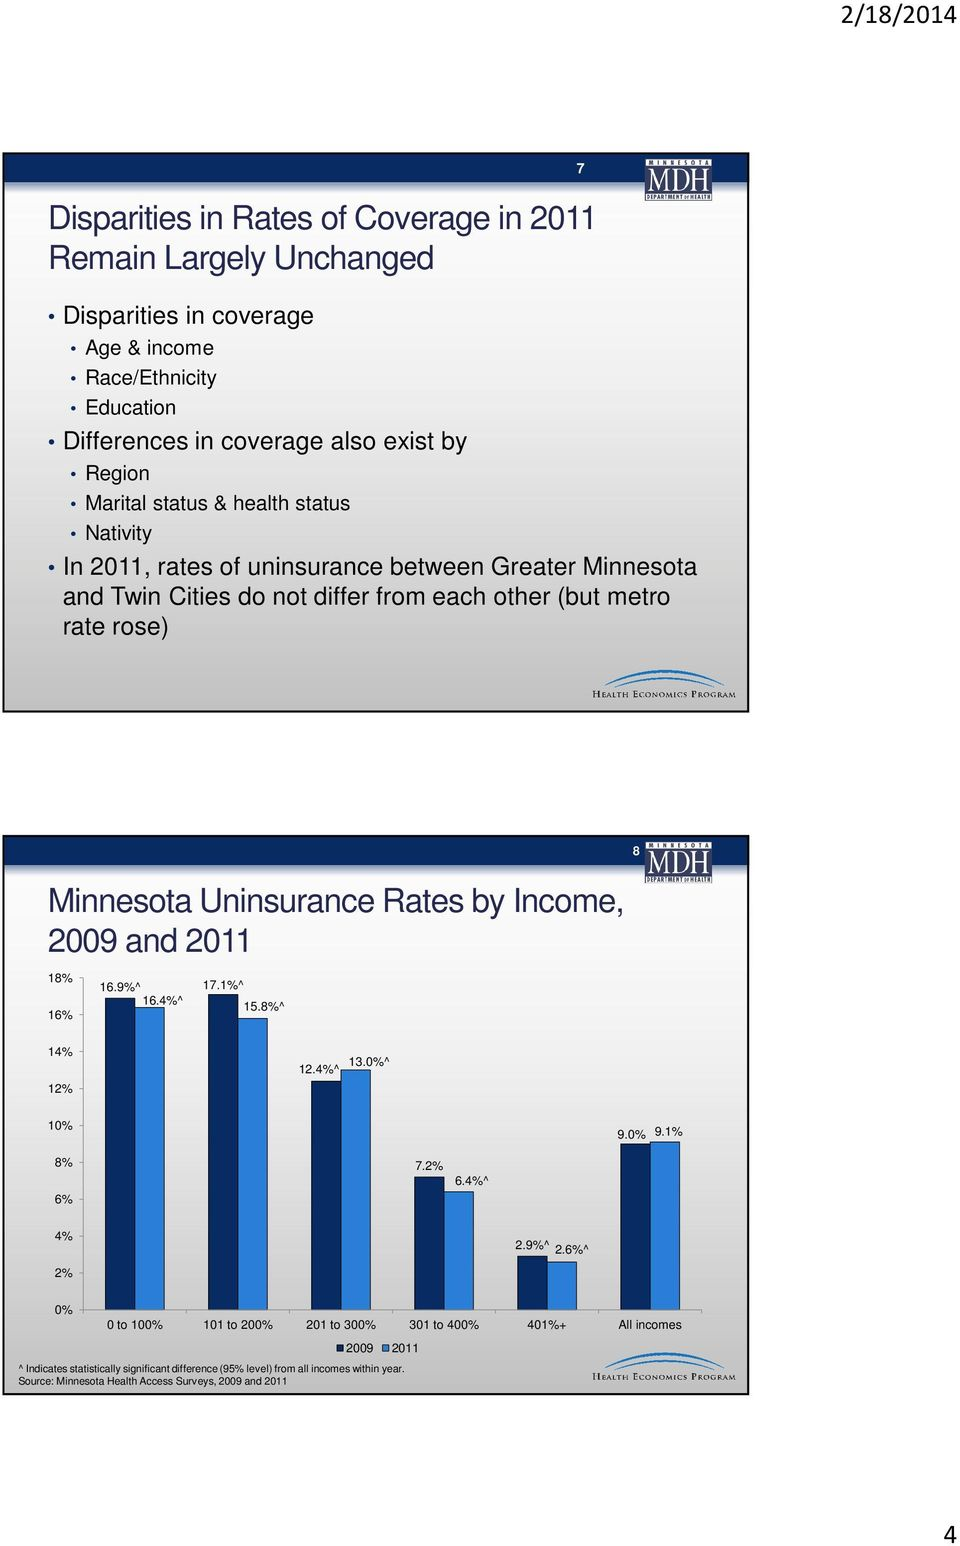 Minnesota Uninsurance Rates by Income, 2009 and 2011 18% 16% 16.9%^ 16.4%^ 17.1%^ 15.8%^ 14% 12% 12.4%^ 13.^ 1 9. 9.1% 8% 6% 7.2% 6.4%^ 4% 2.9%^ 2.